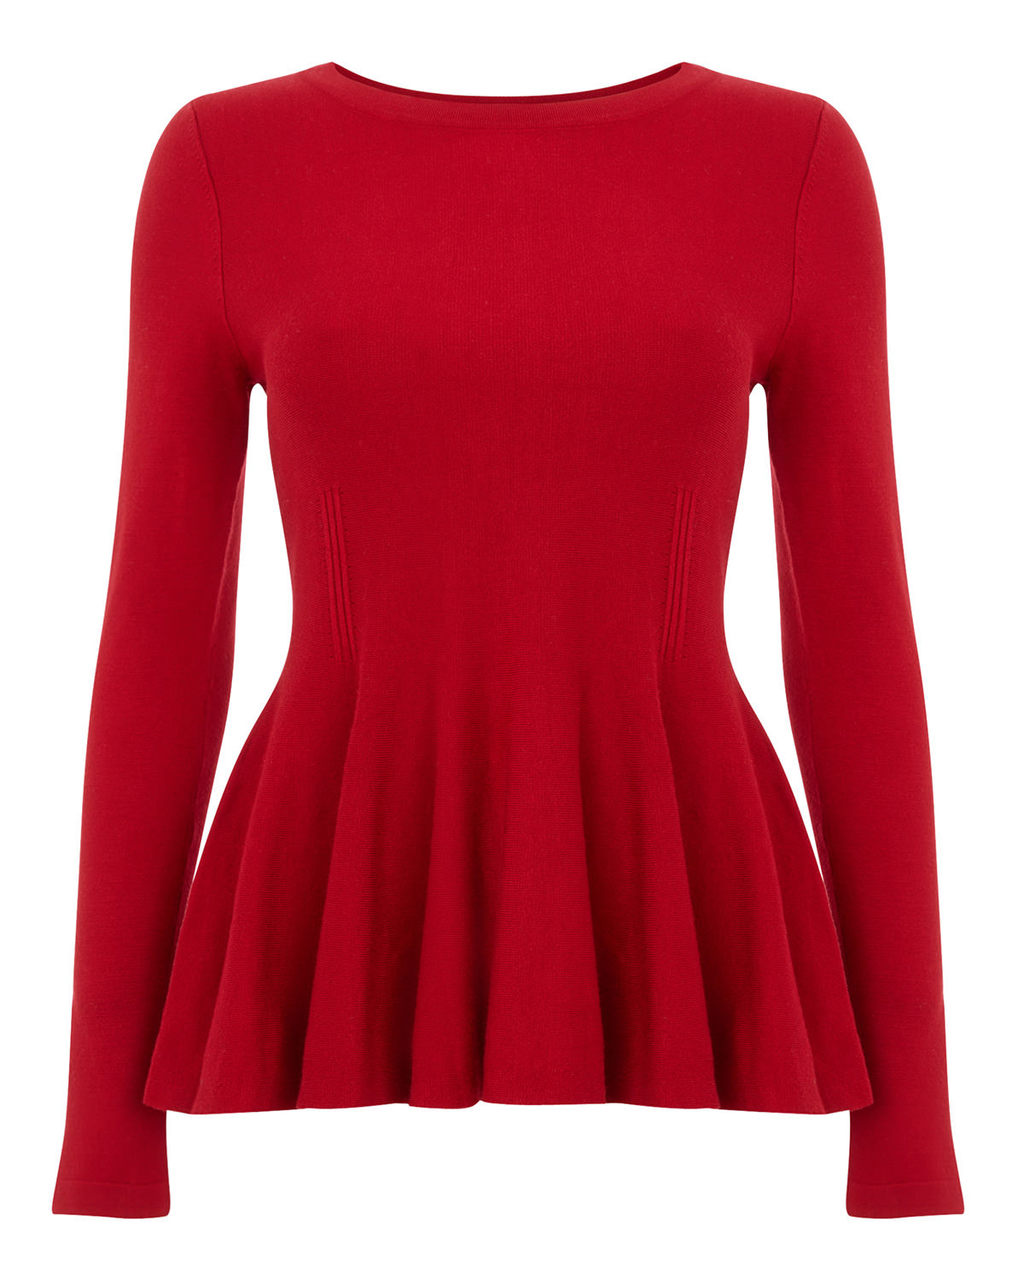 Maritza Peplum Knit Top - neckline: round neck; pattern: plain; length: below the bottom; waist detail: peplum waist detail; predominant colour: true red; occasions: work, occasion; style: top; fit: tailored/fitted; sleeve length: long sleeve; sleeve style: standard; texture group: knits/crochet; pattern type: knitted - fine stitch; season: a/w 2015; wardrobe: highlight